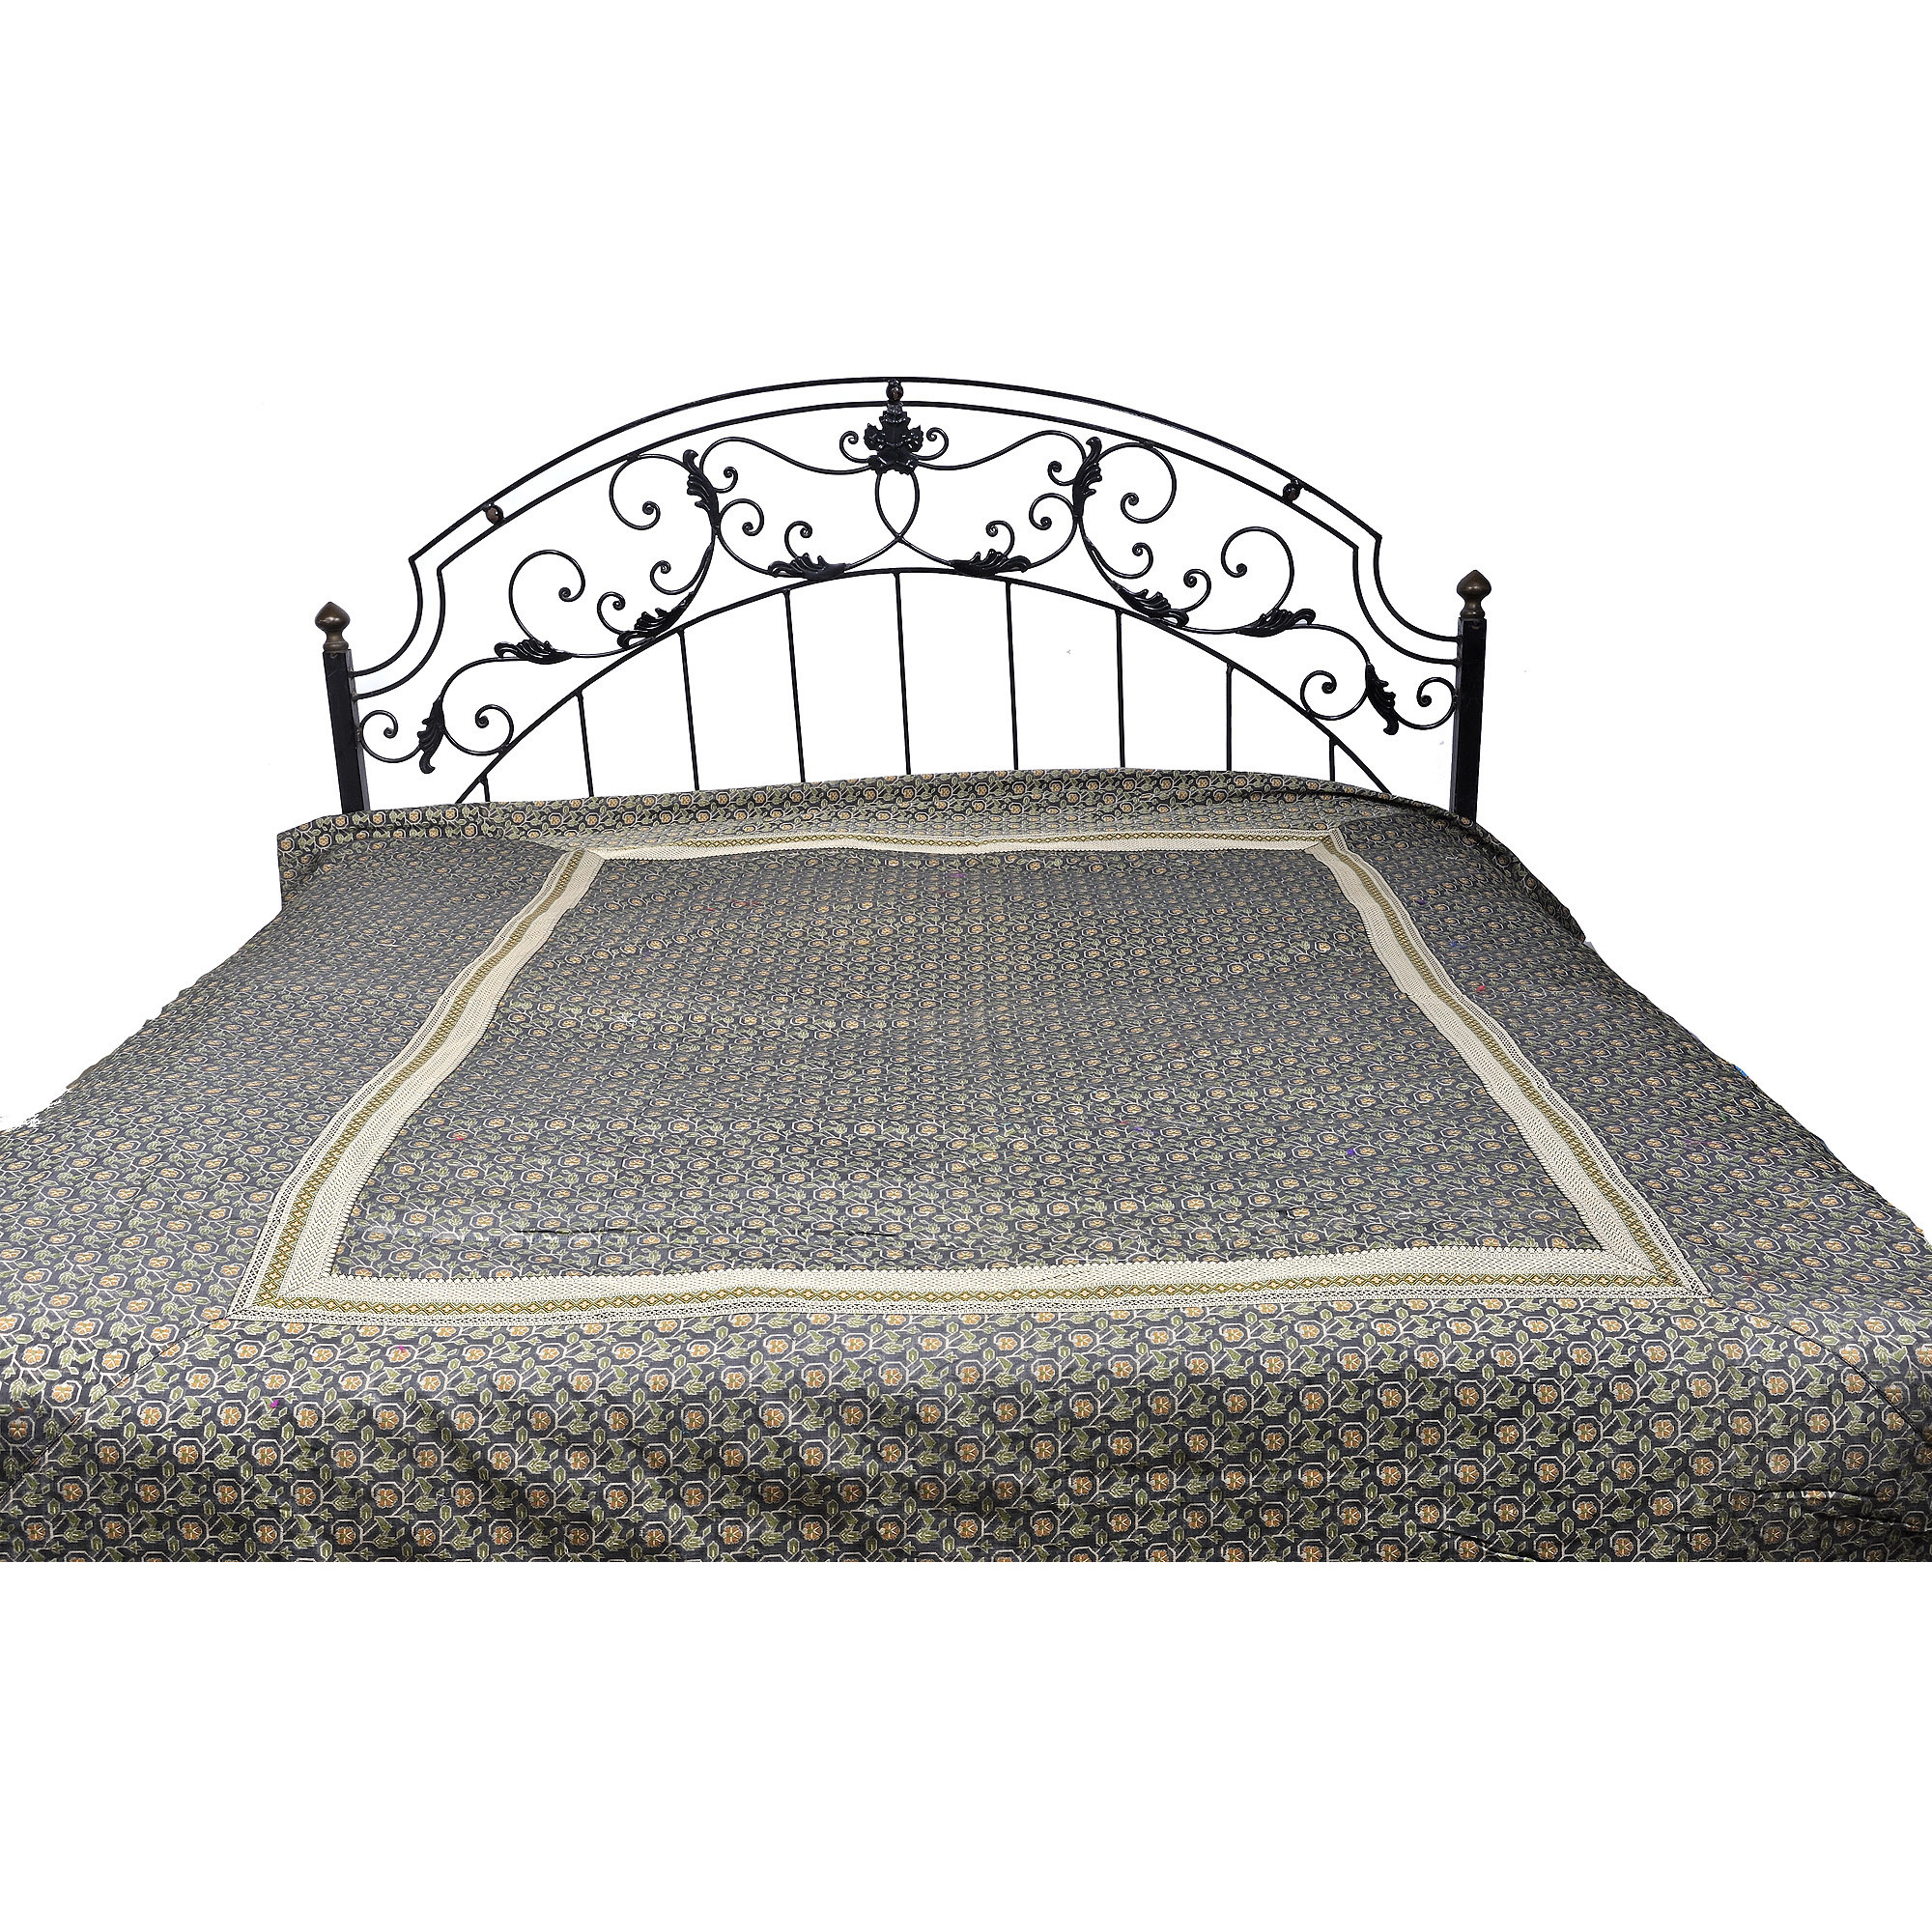 Steel-Gray Banarasi Bedspread with All-Over Woven Flowers